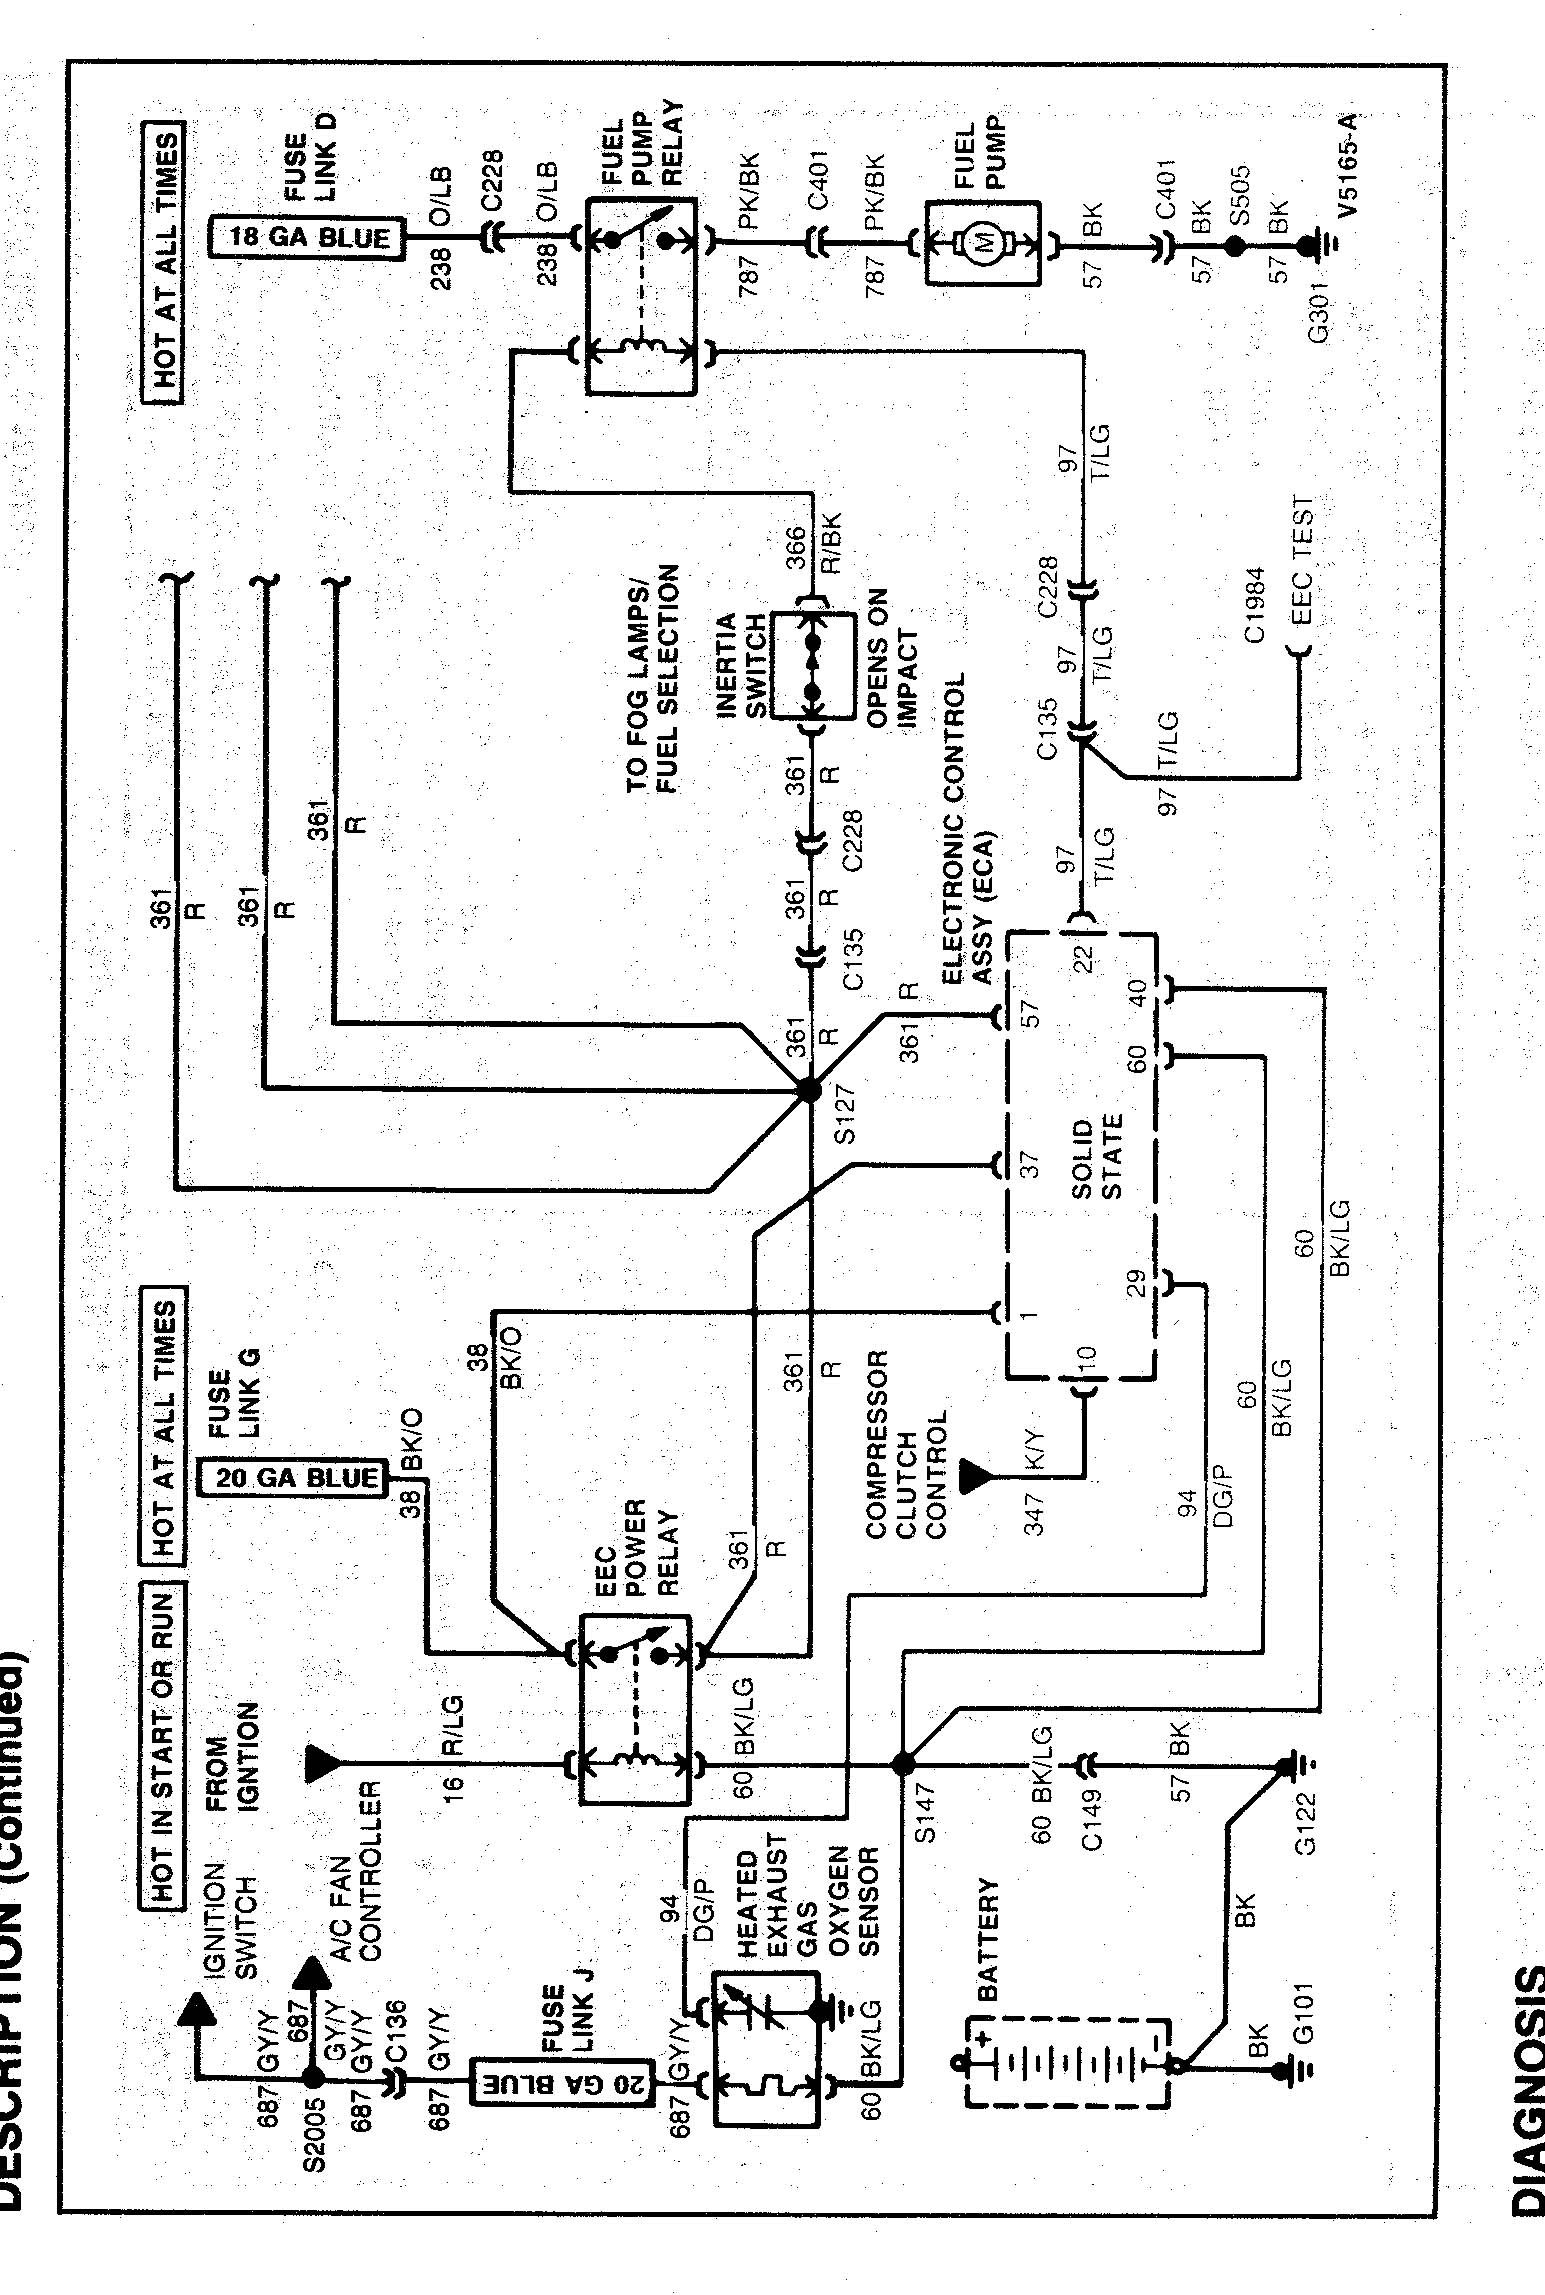 1993 Mustang Ignition Switch Wiring Diagram, 1993, Free